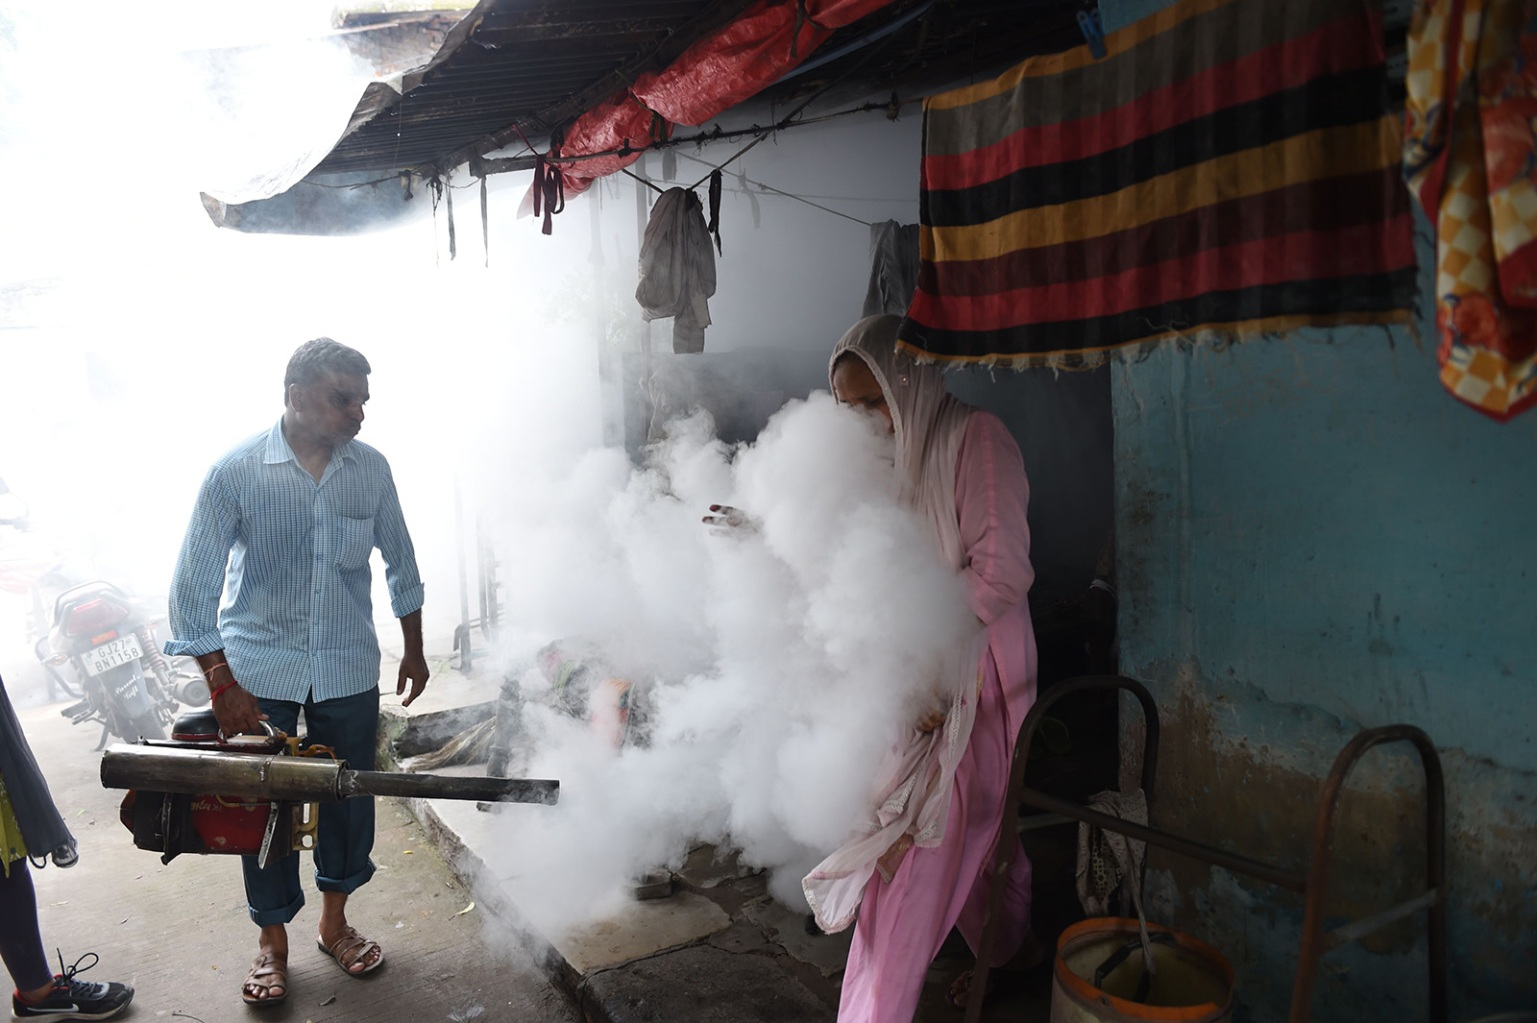 A worker fumigates an area to prevent mosquitos from breeding in a residential colony during World Mosquito Day in Ahmedabad on Aug. 20. SAM PANTHAKY/AFP/Getty Images